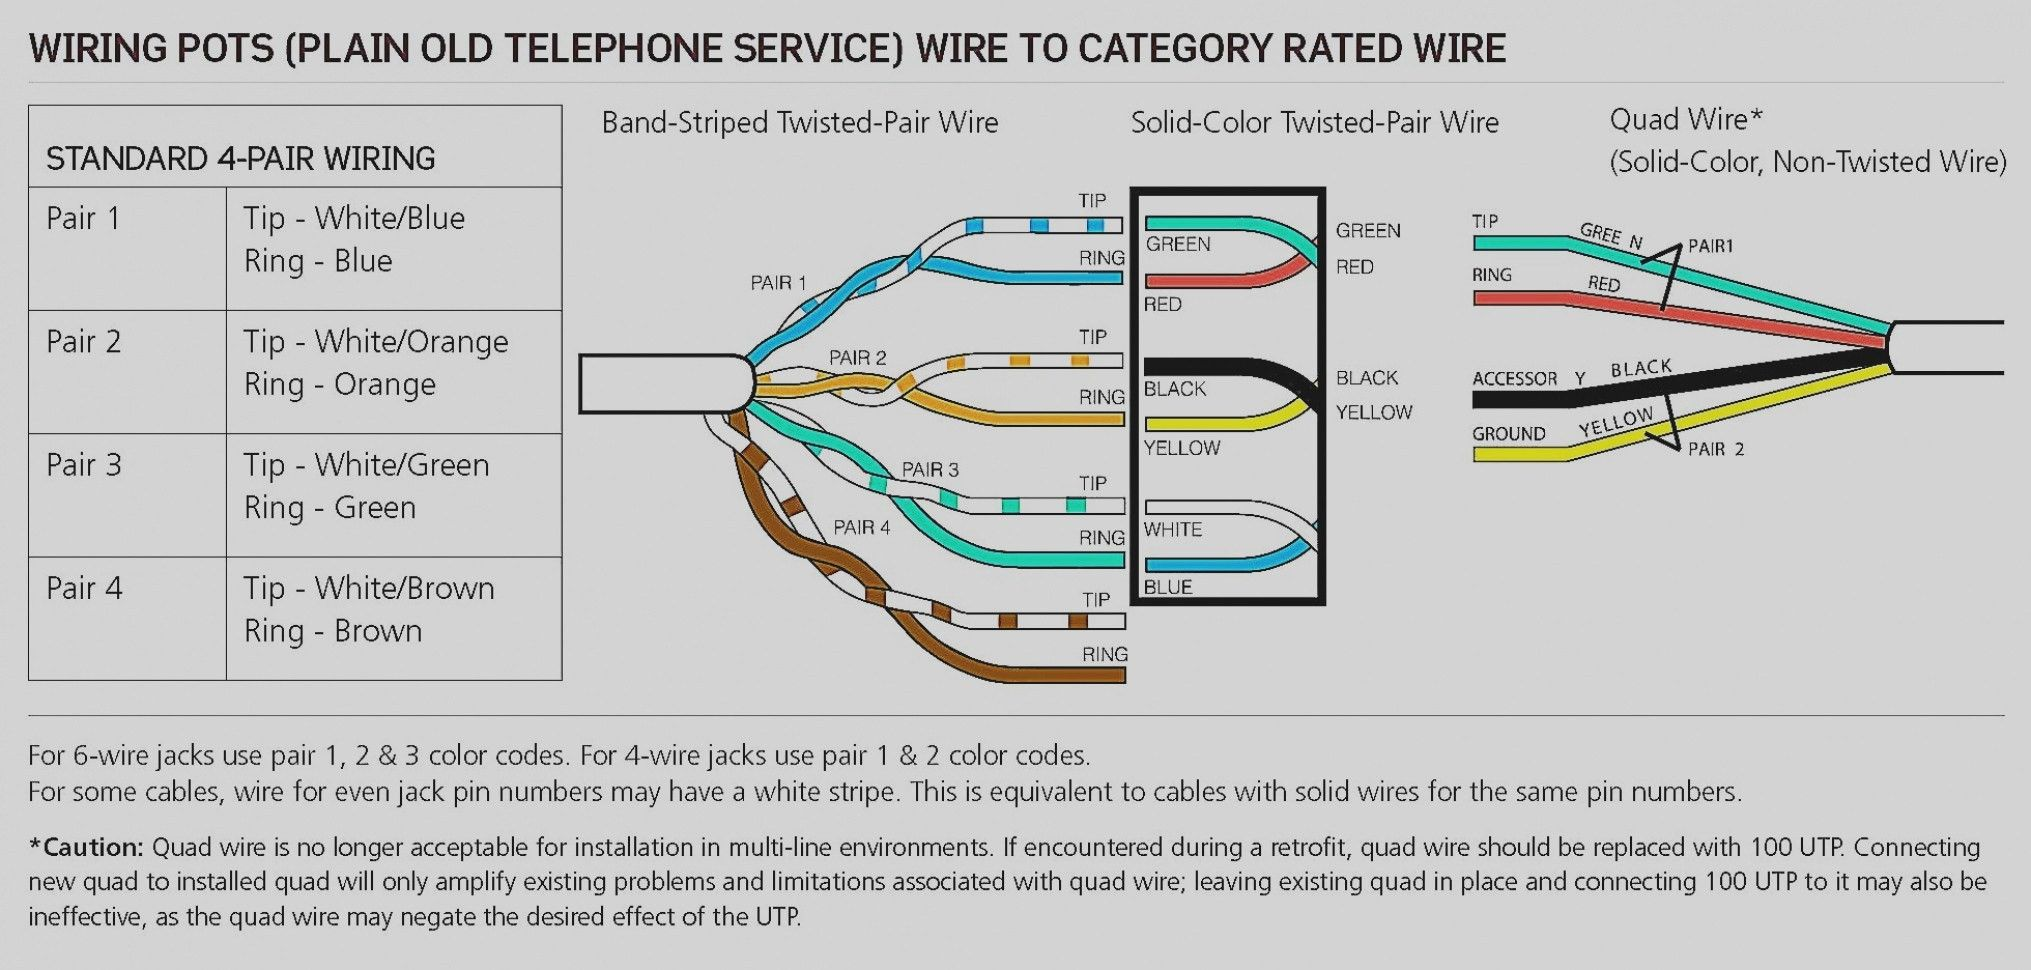 Wiring Cable Phone Numbers